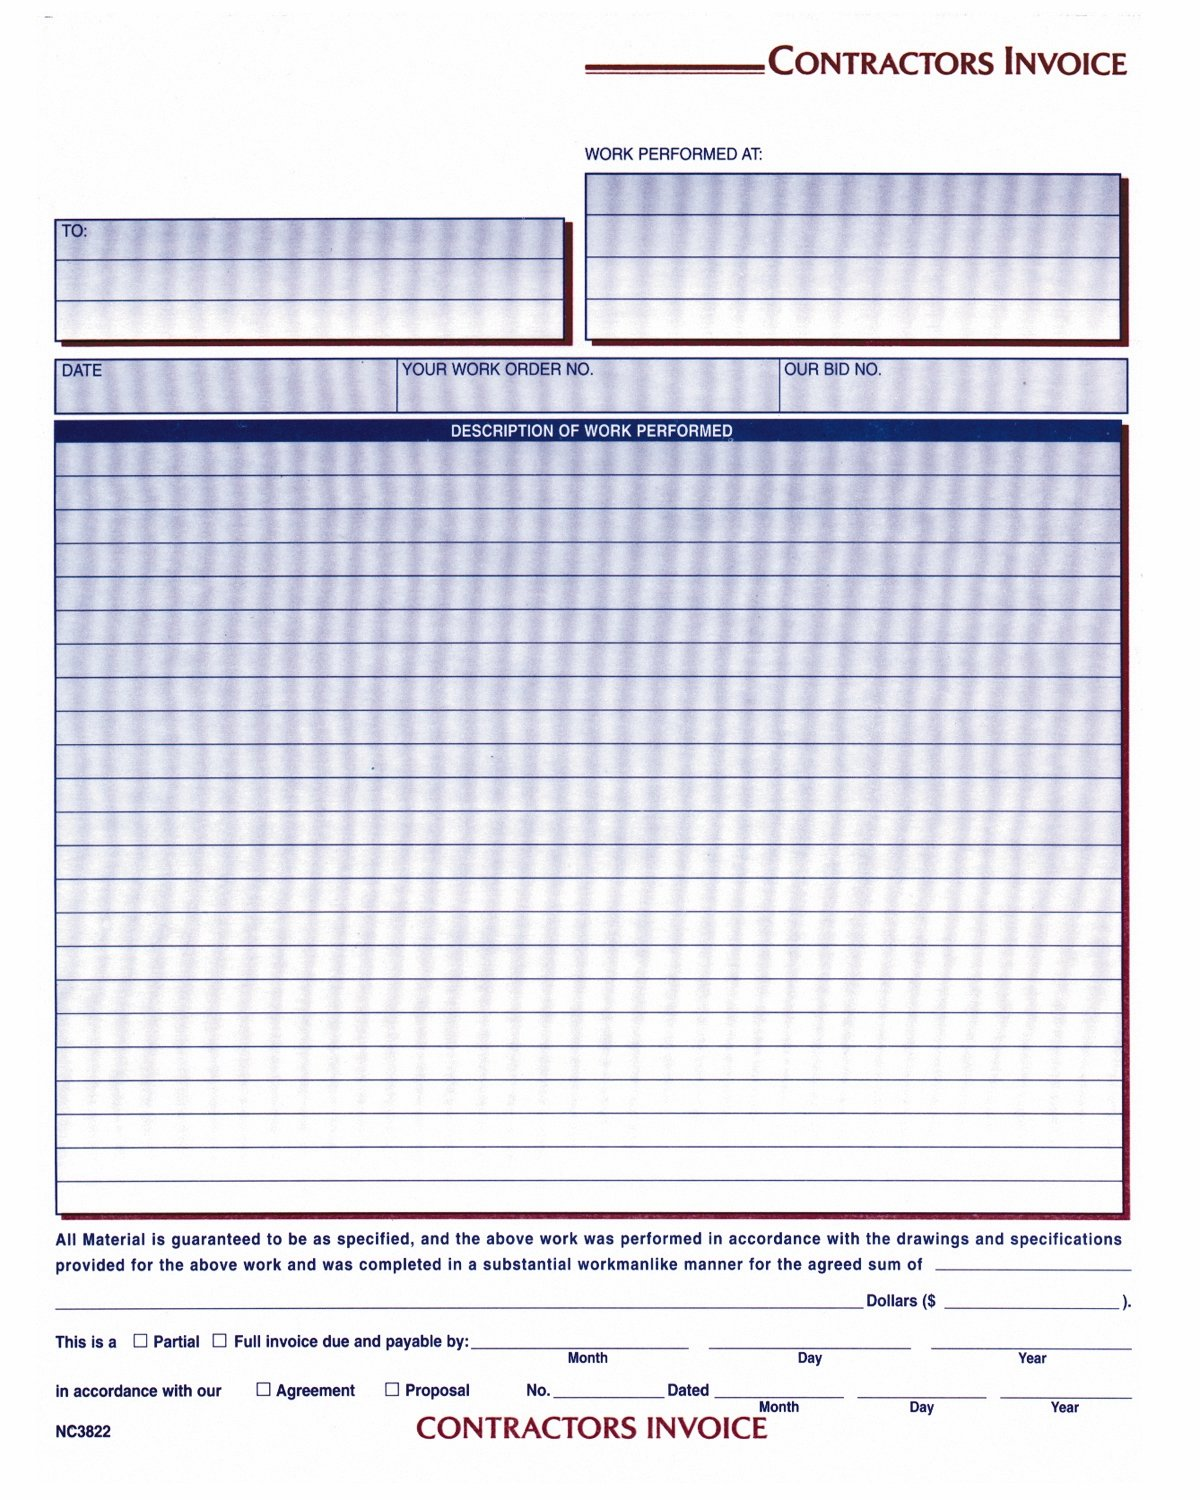 Amazoncom Adams Contractor Invoice Forms X Inch - Invoice format download online comic book store